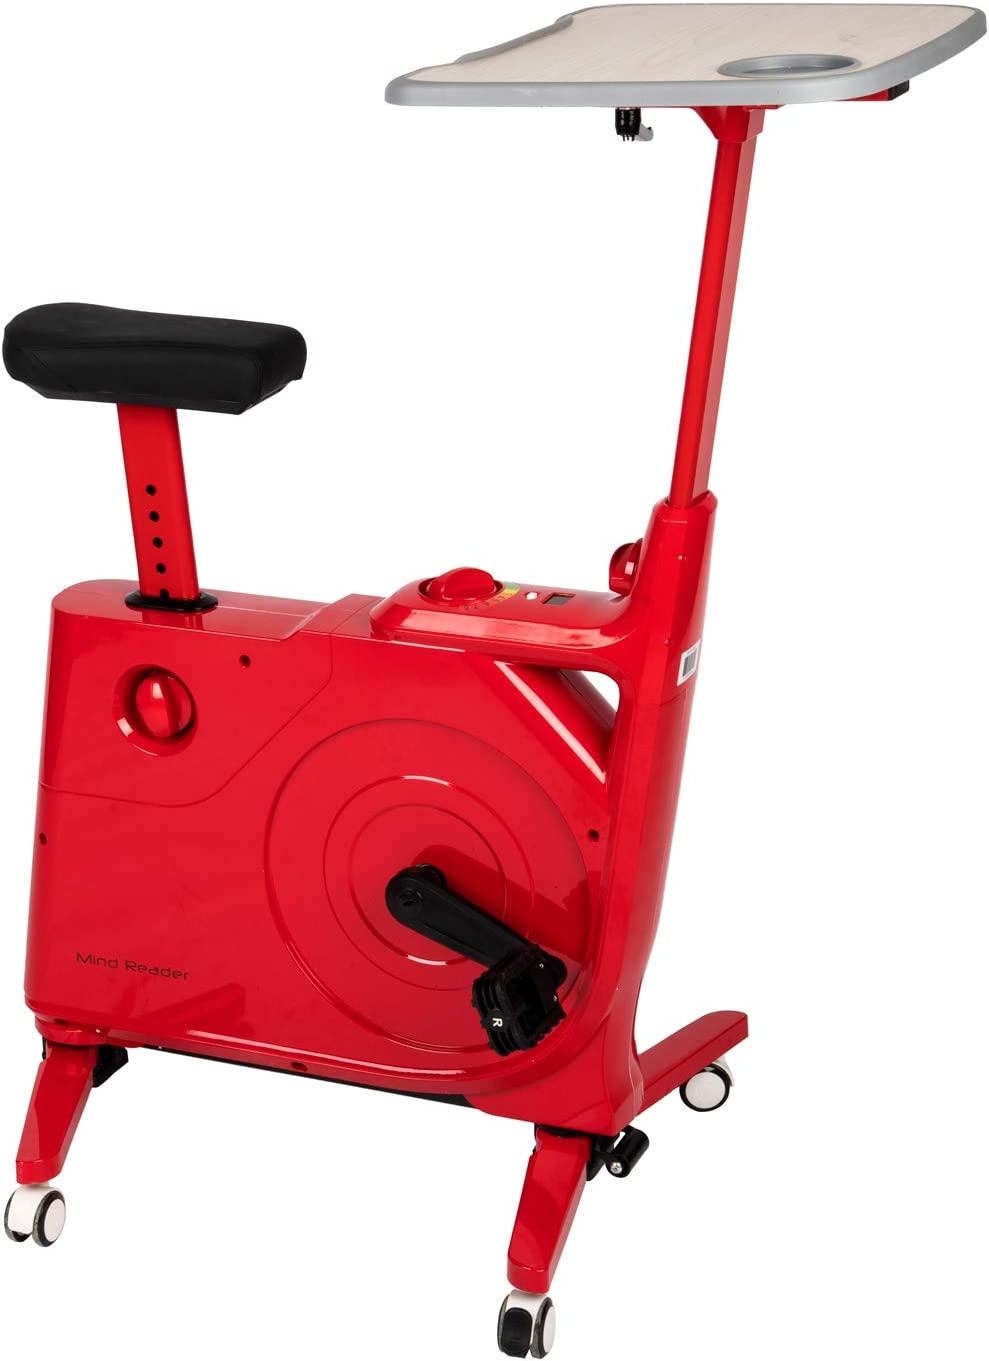 Mind Reader Bike with Desk for Exercise and Study or Work, Adjustable Height and Resistance, Home Fitness Station, Red